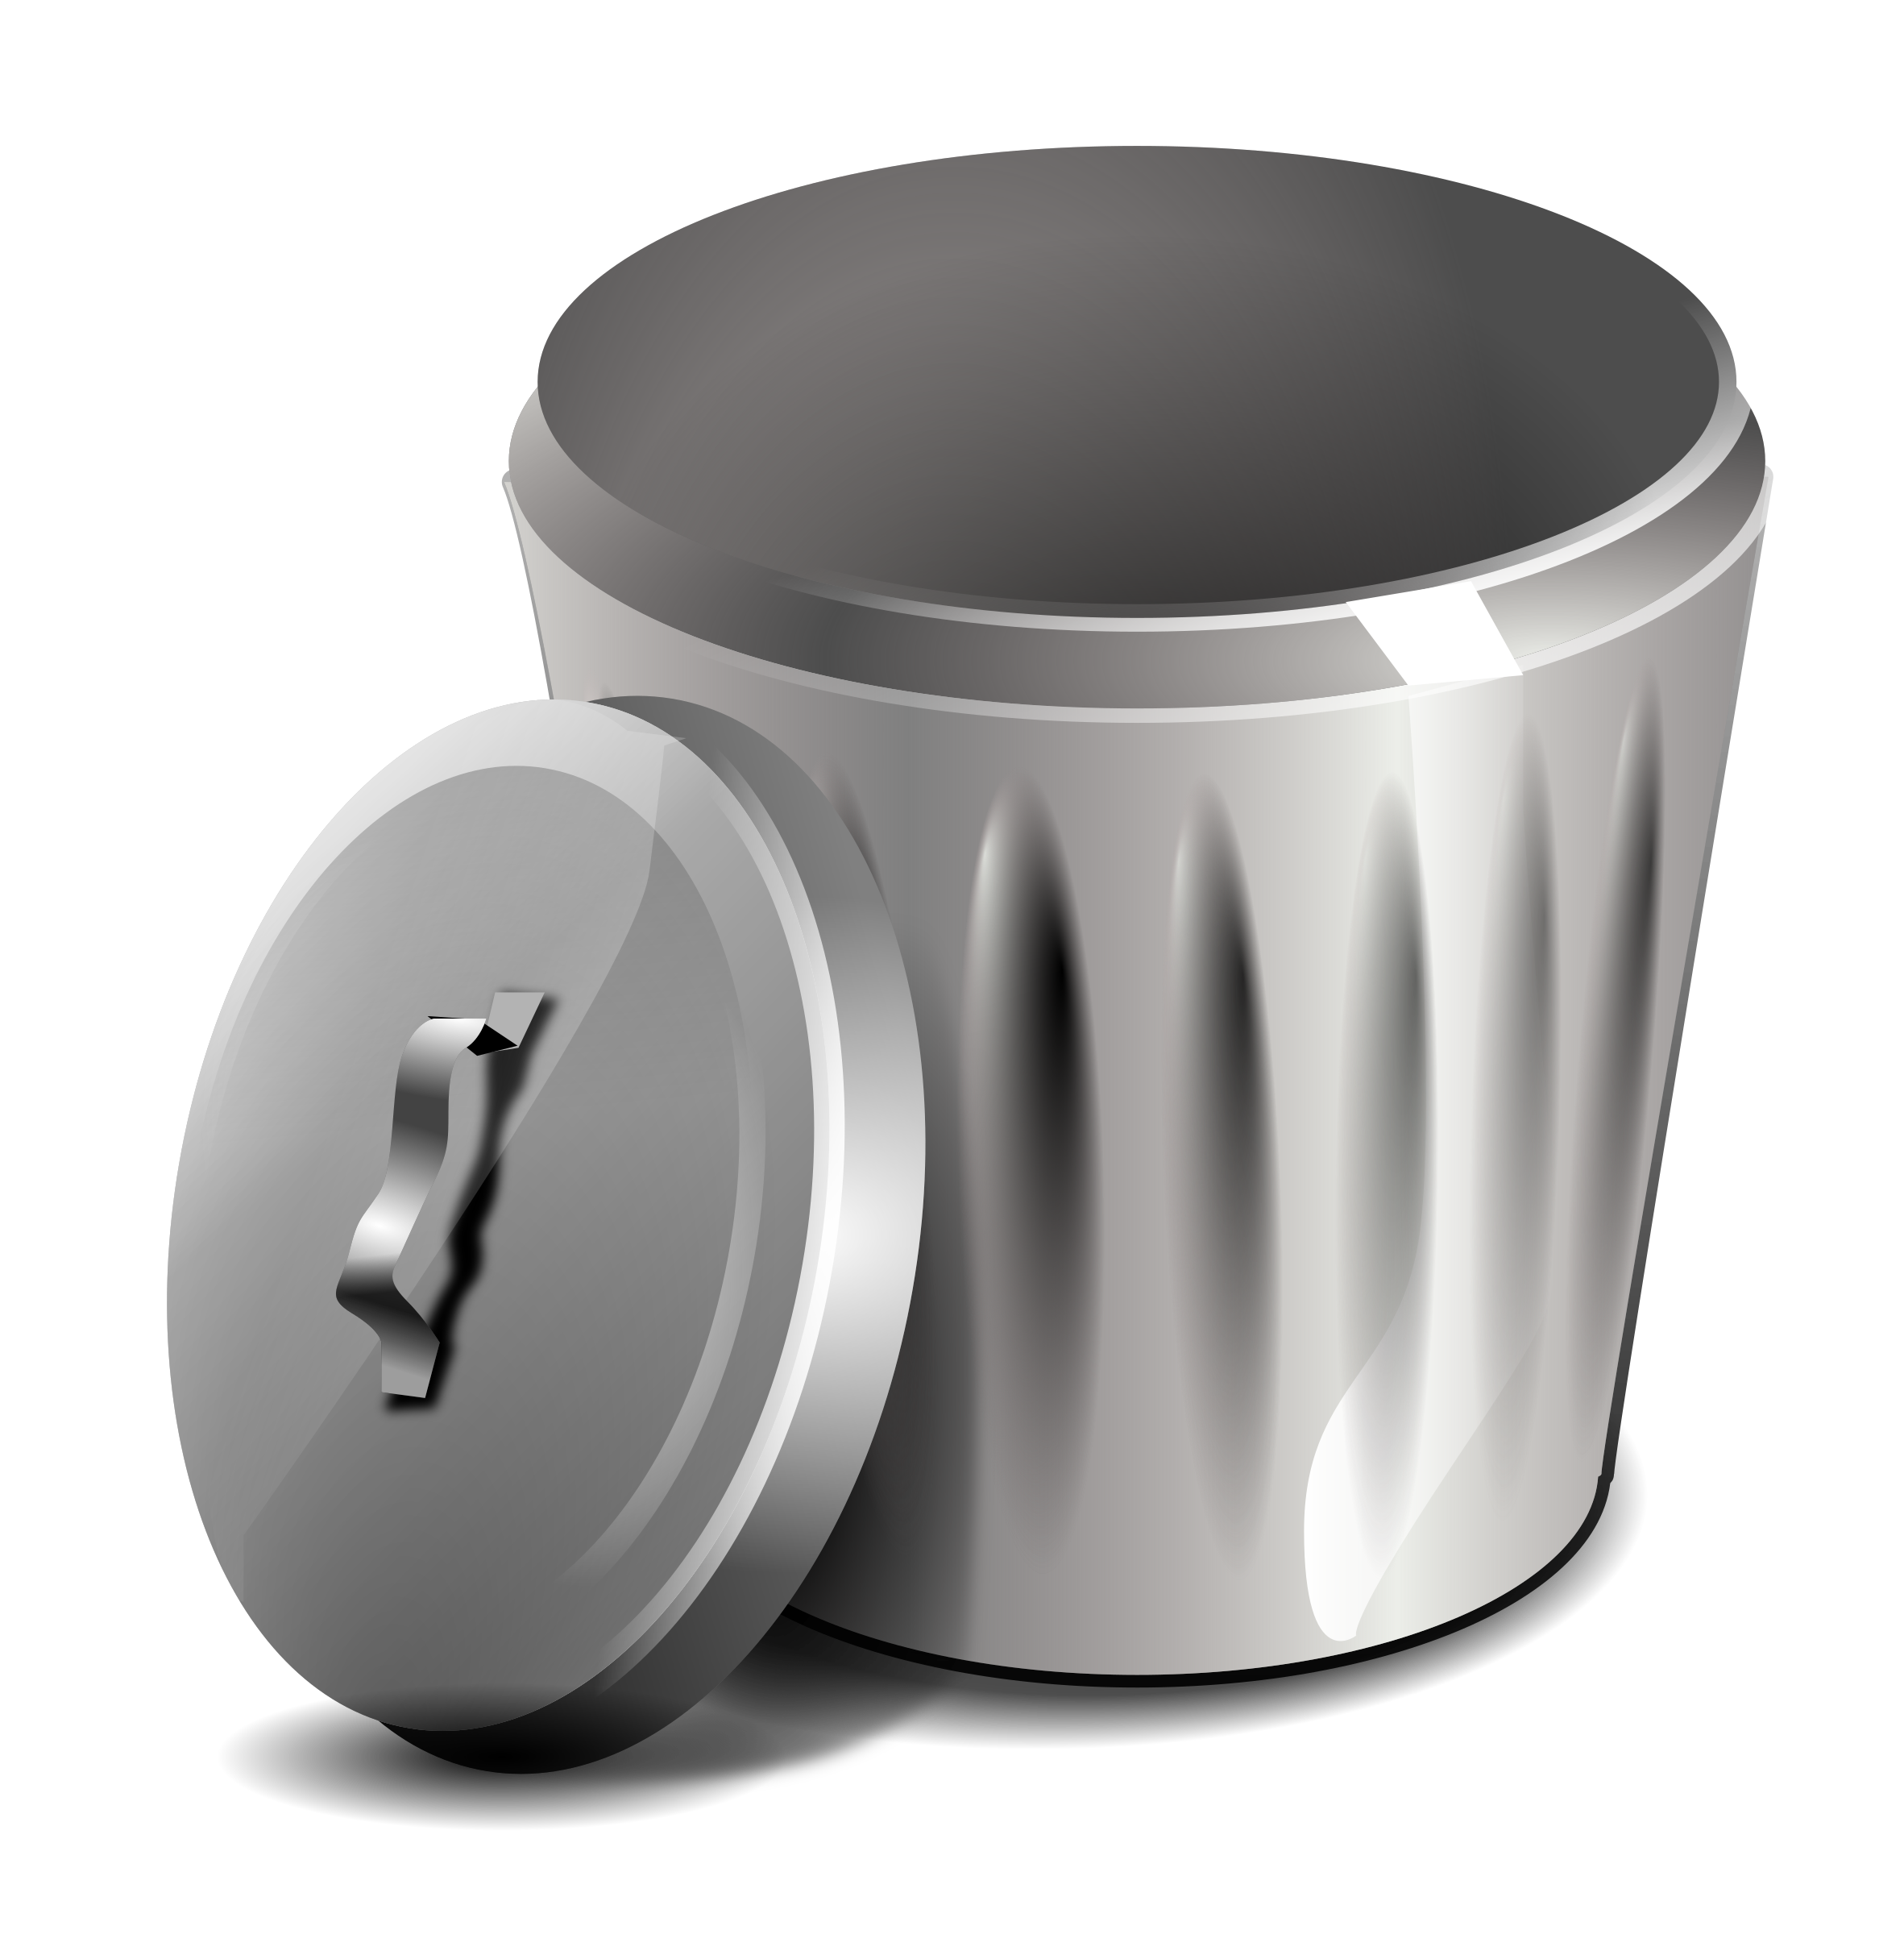 Trash can png images. Lunchbox clipart bin